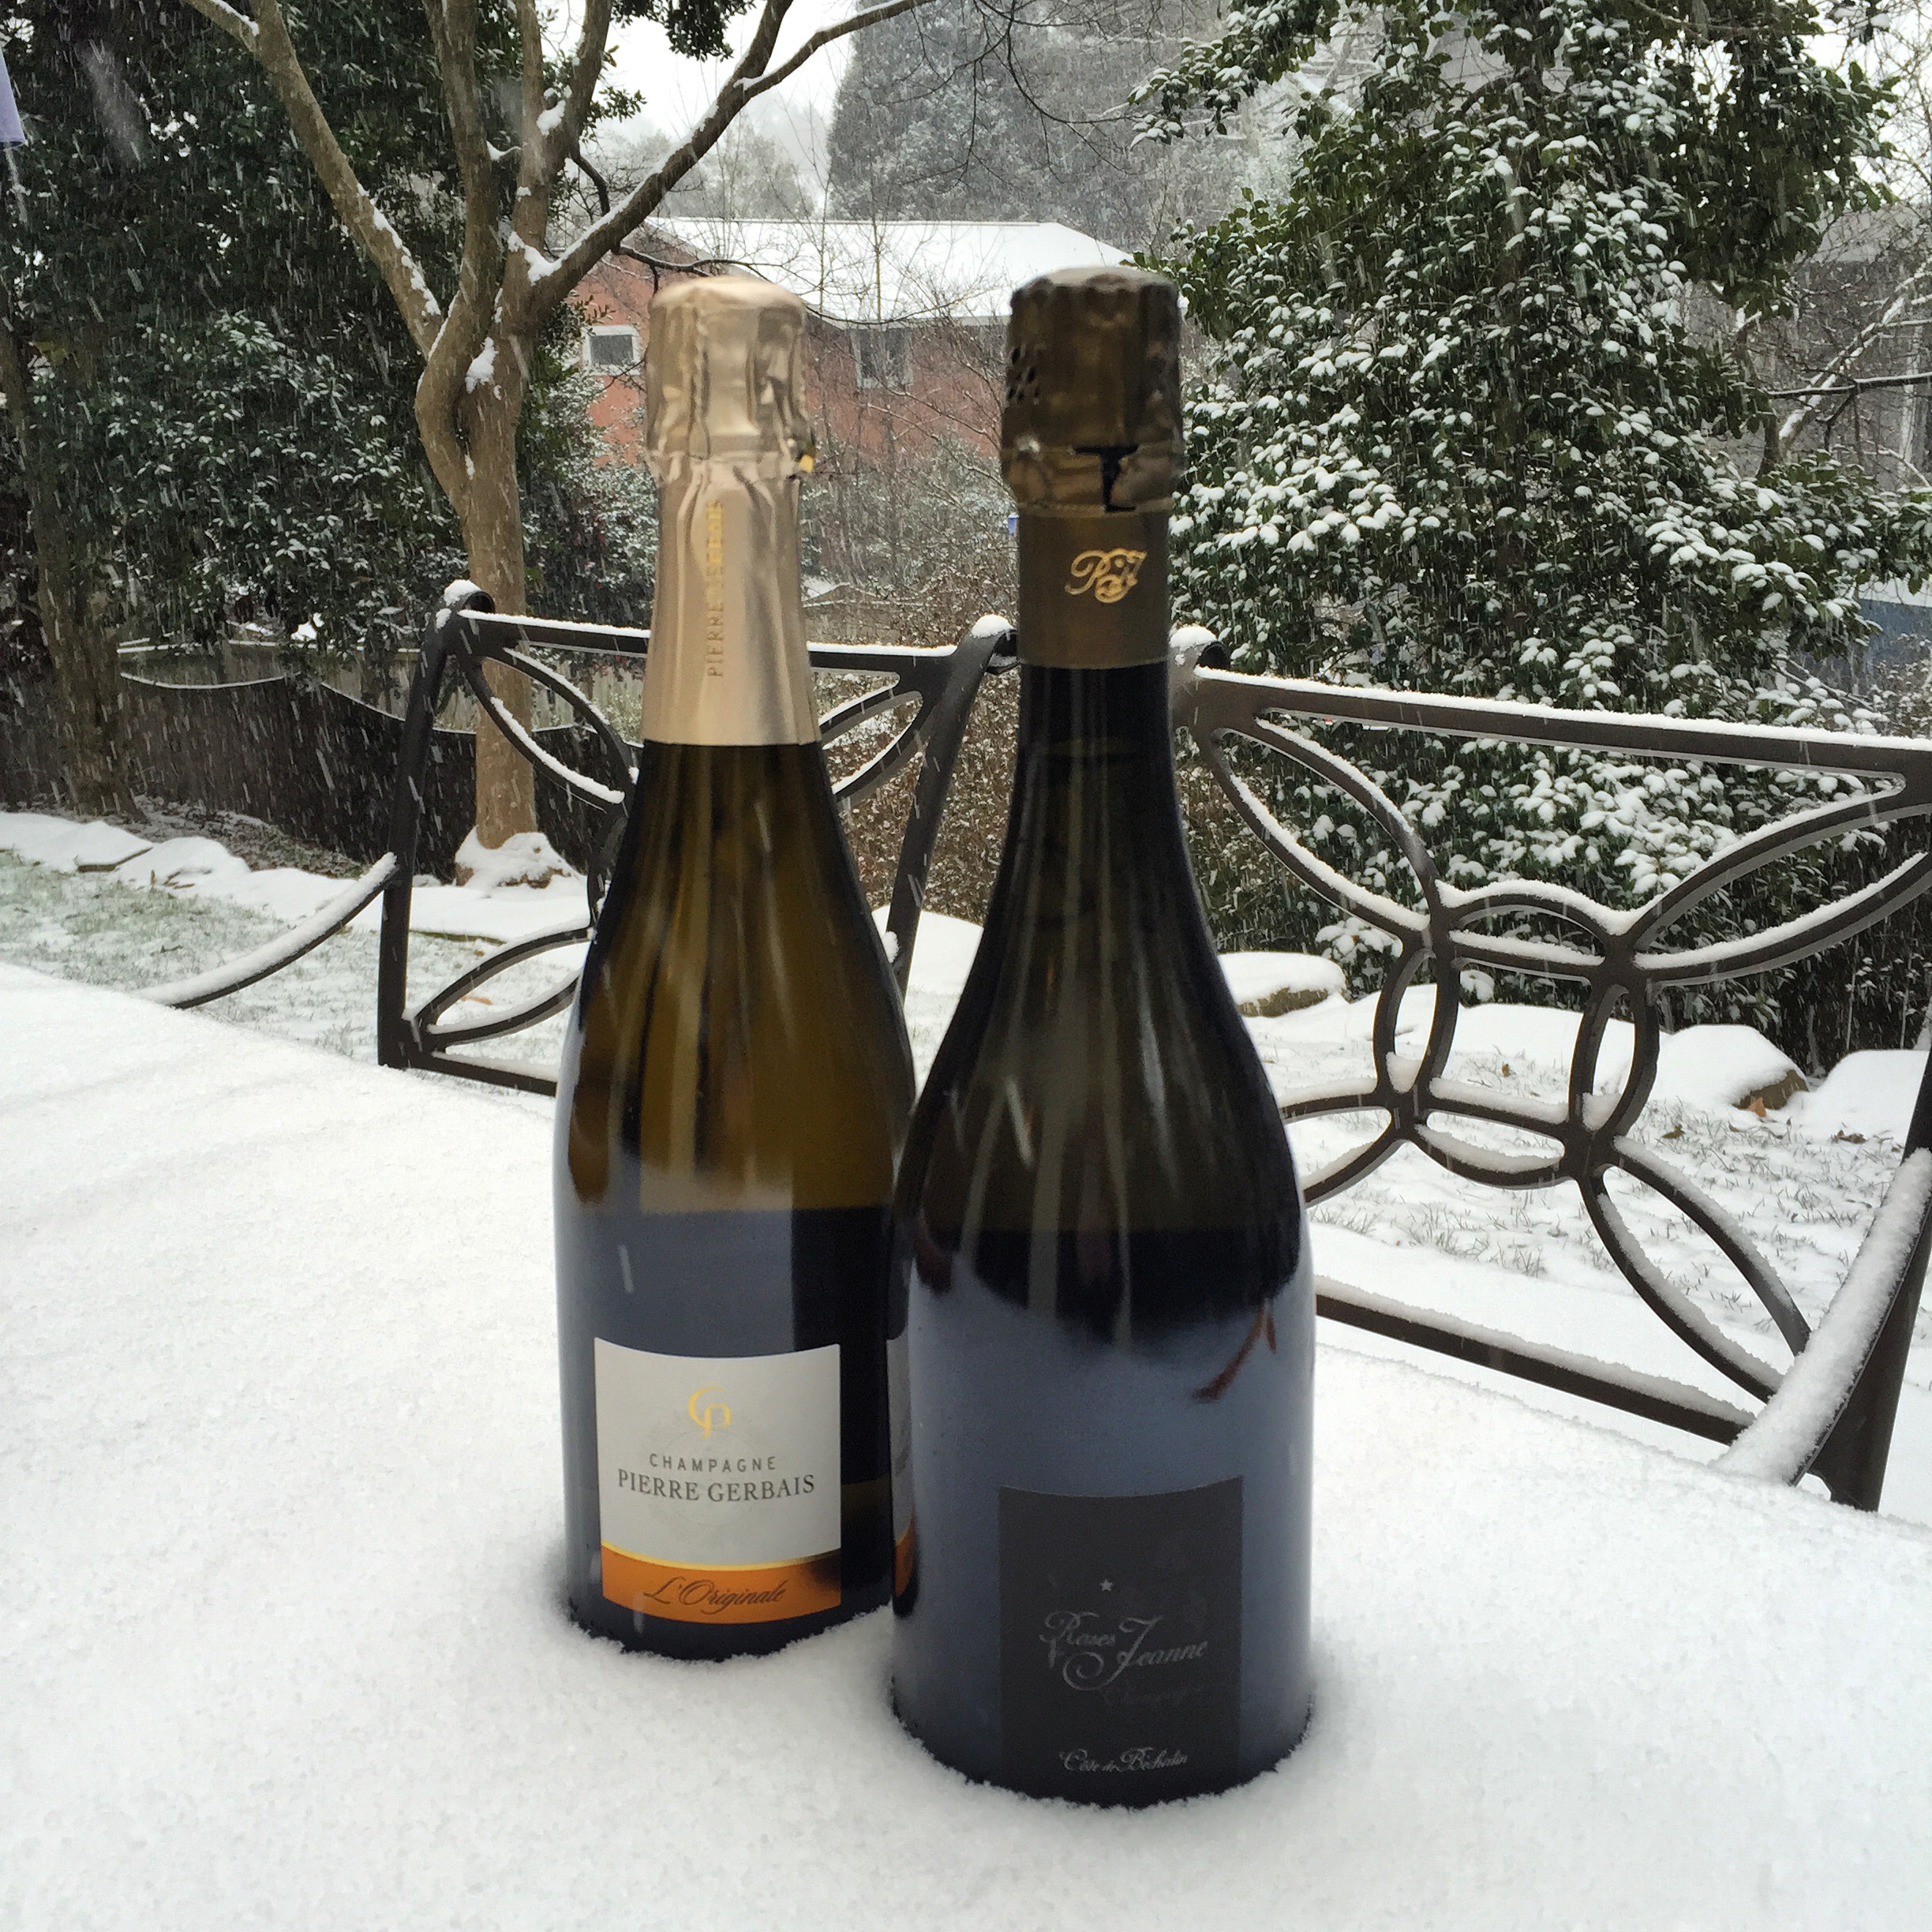 Champagnes from Celles-sur-Ource—Pierre Gerbais L'Originale and Roses de Jeanne Côte de Béchalin—chilling in the snow.